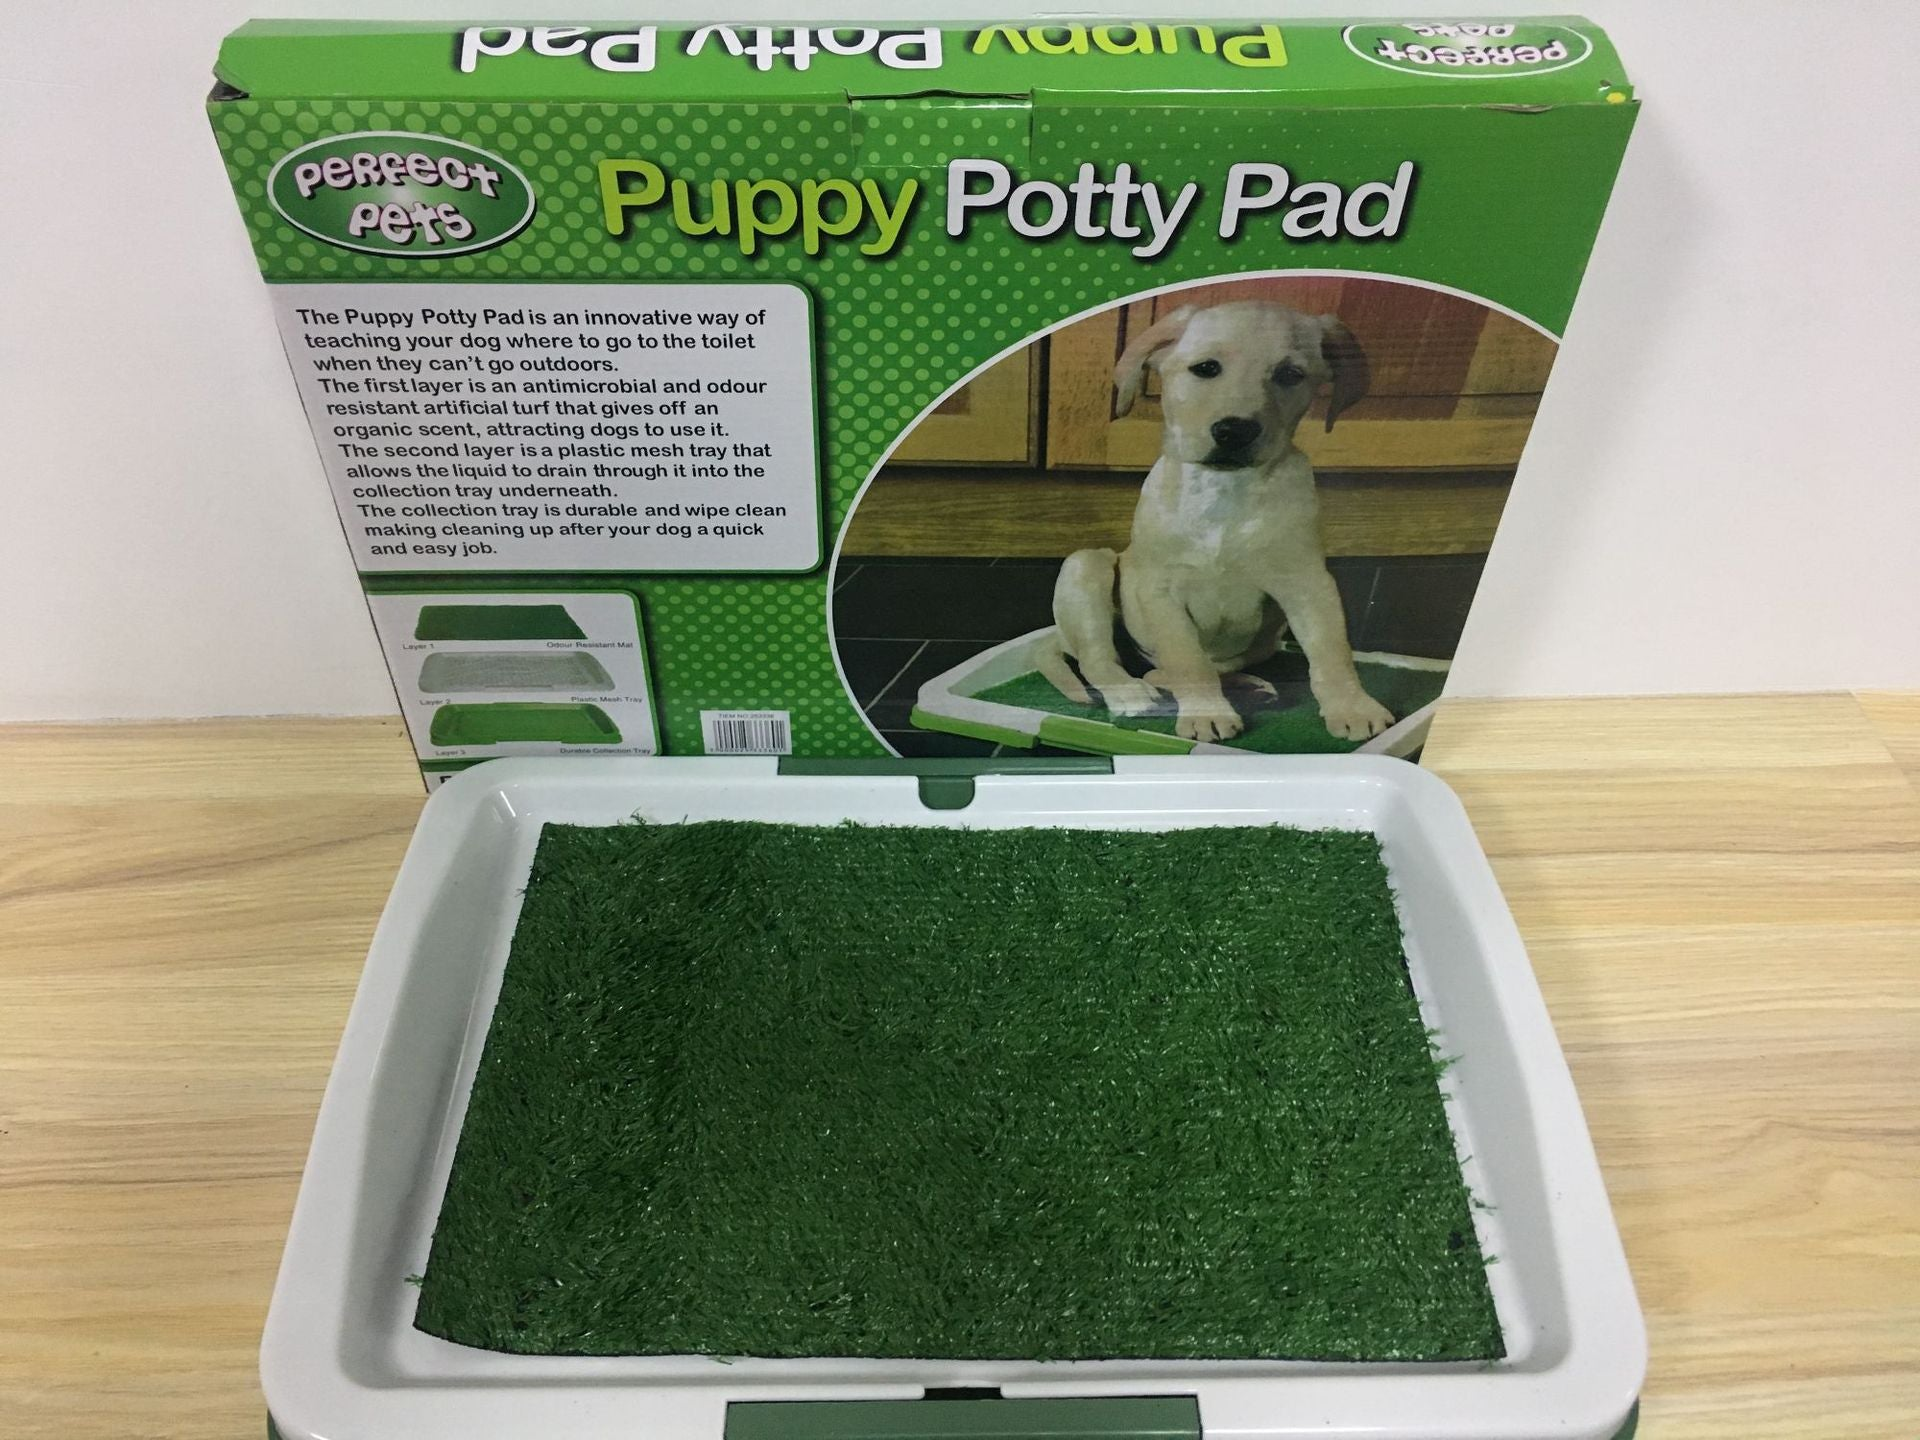 Puppy Potty Pad puppy indoor toilet Three-layer leakproof dog fixed lawn cushion toilet